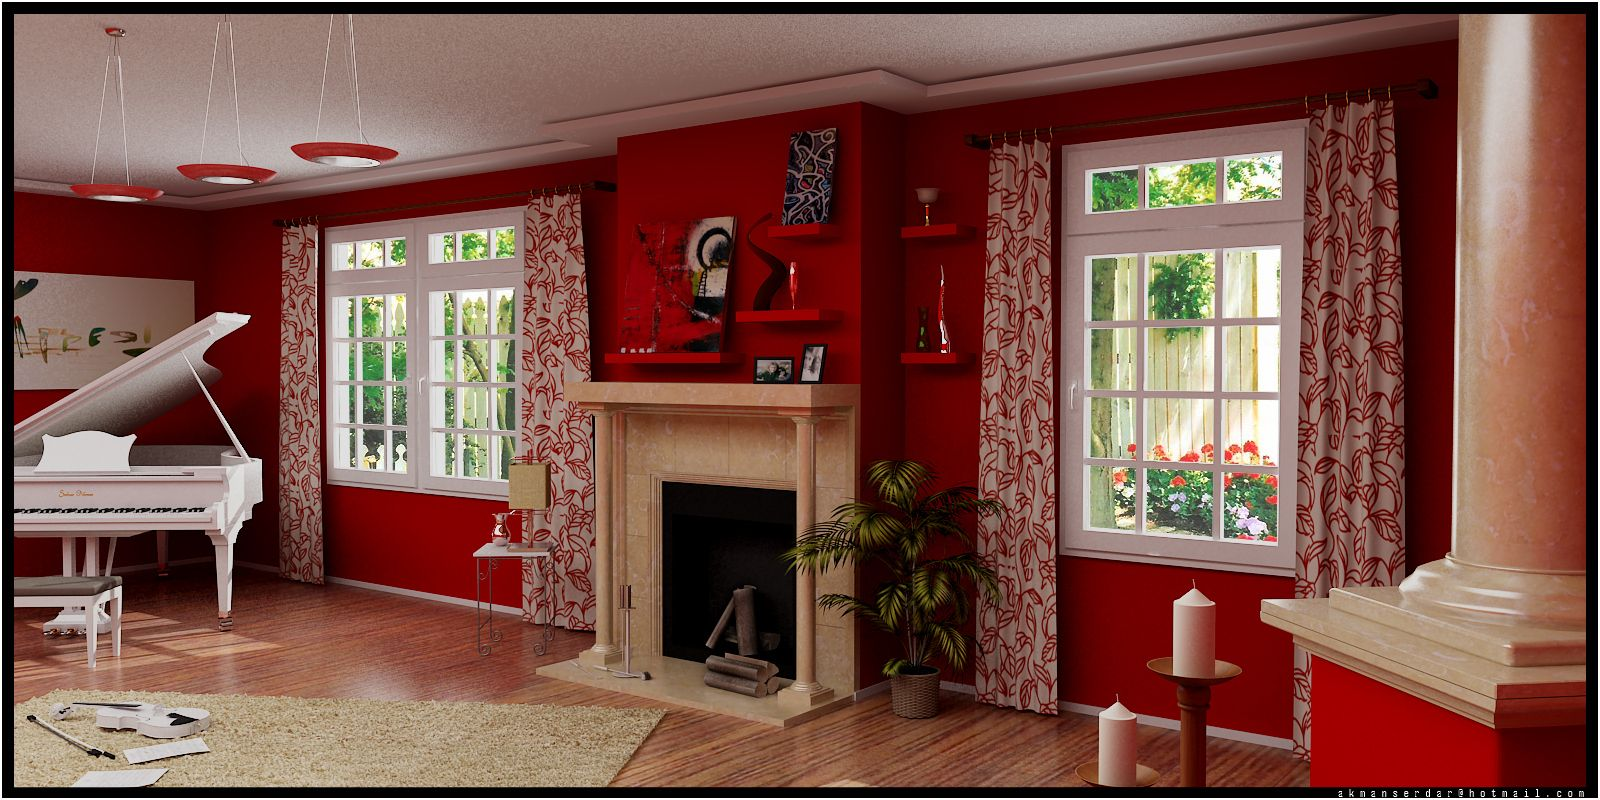 12 Ideal Living Room Wallpaper Ideas Red White Black Pics Check More At Https Www Metyso Org 12 Ideal Living Room Wallpaper Ideas Red White Black Pics